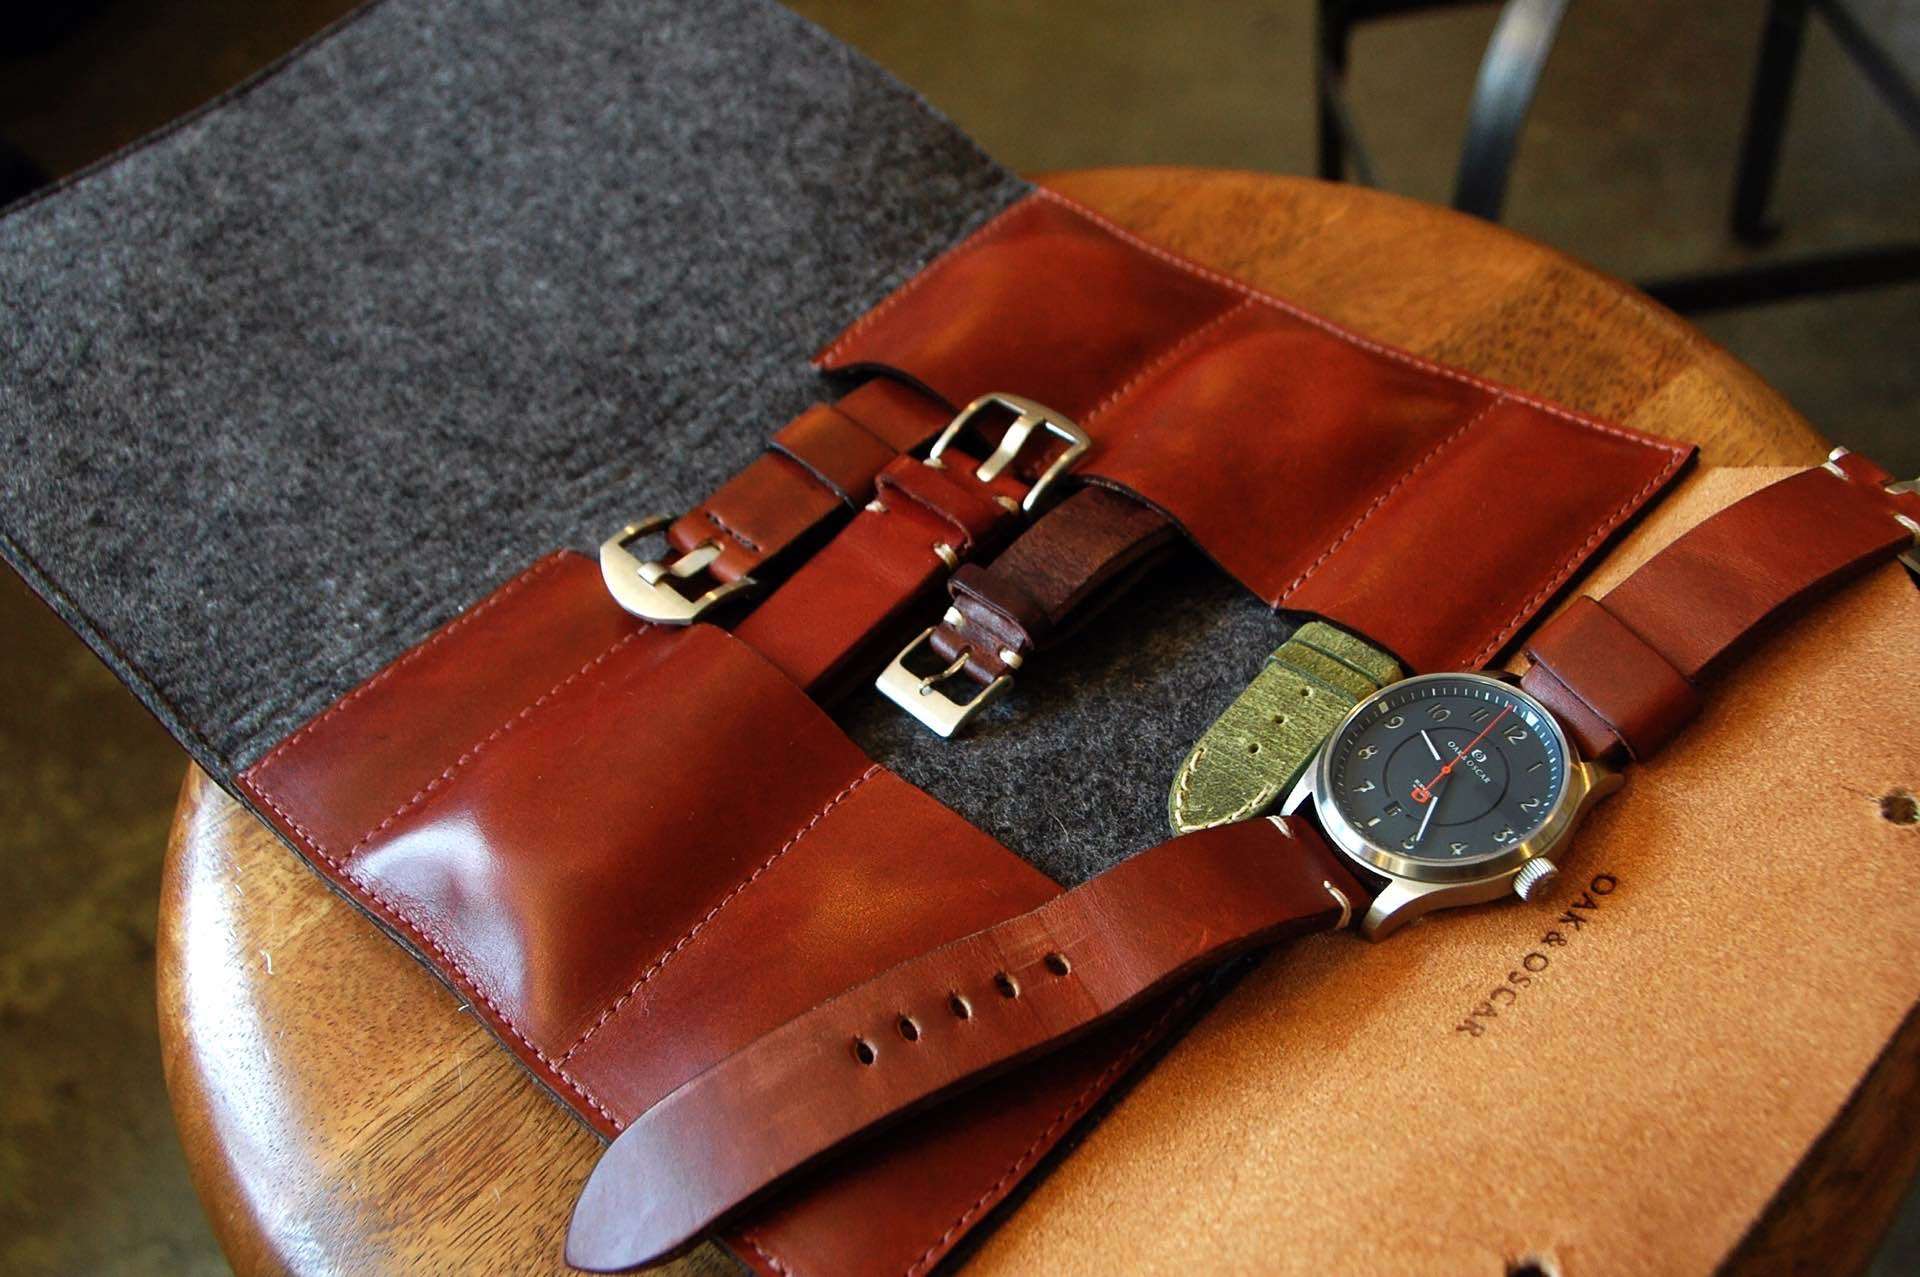 The watch wallet. (Straps pictured not included.)